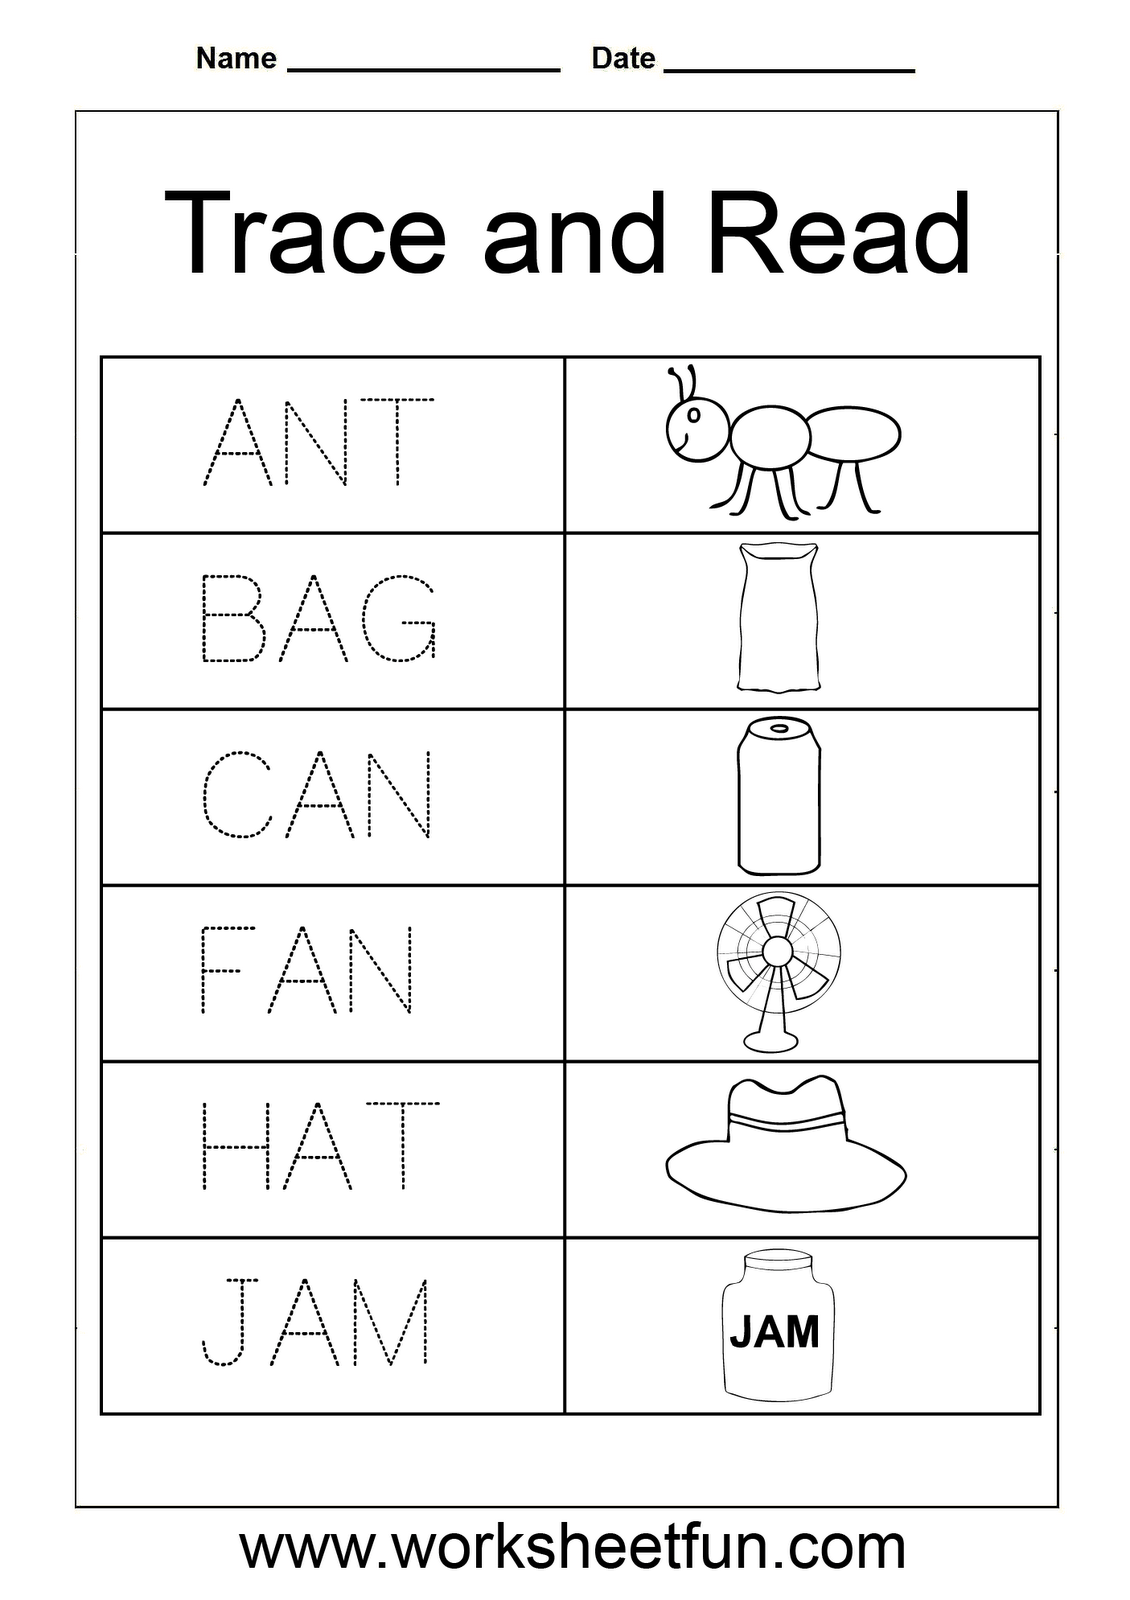 Trace And Read M Worksheet 1